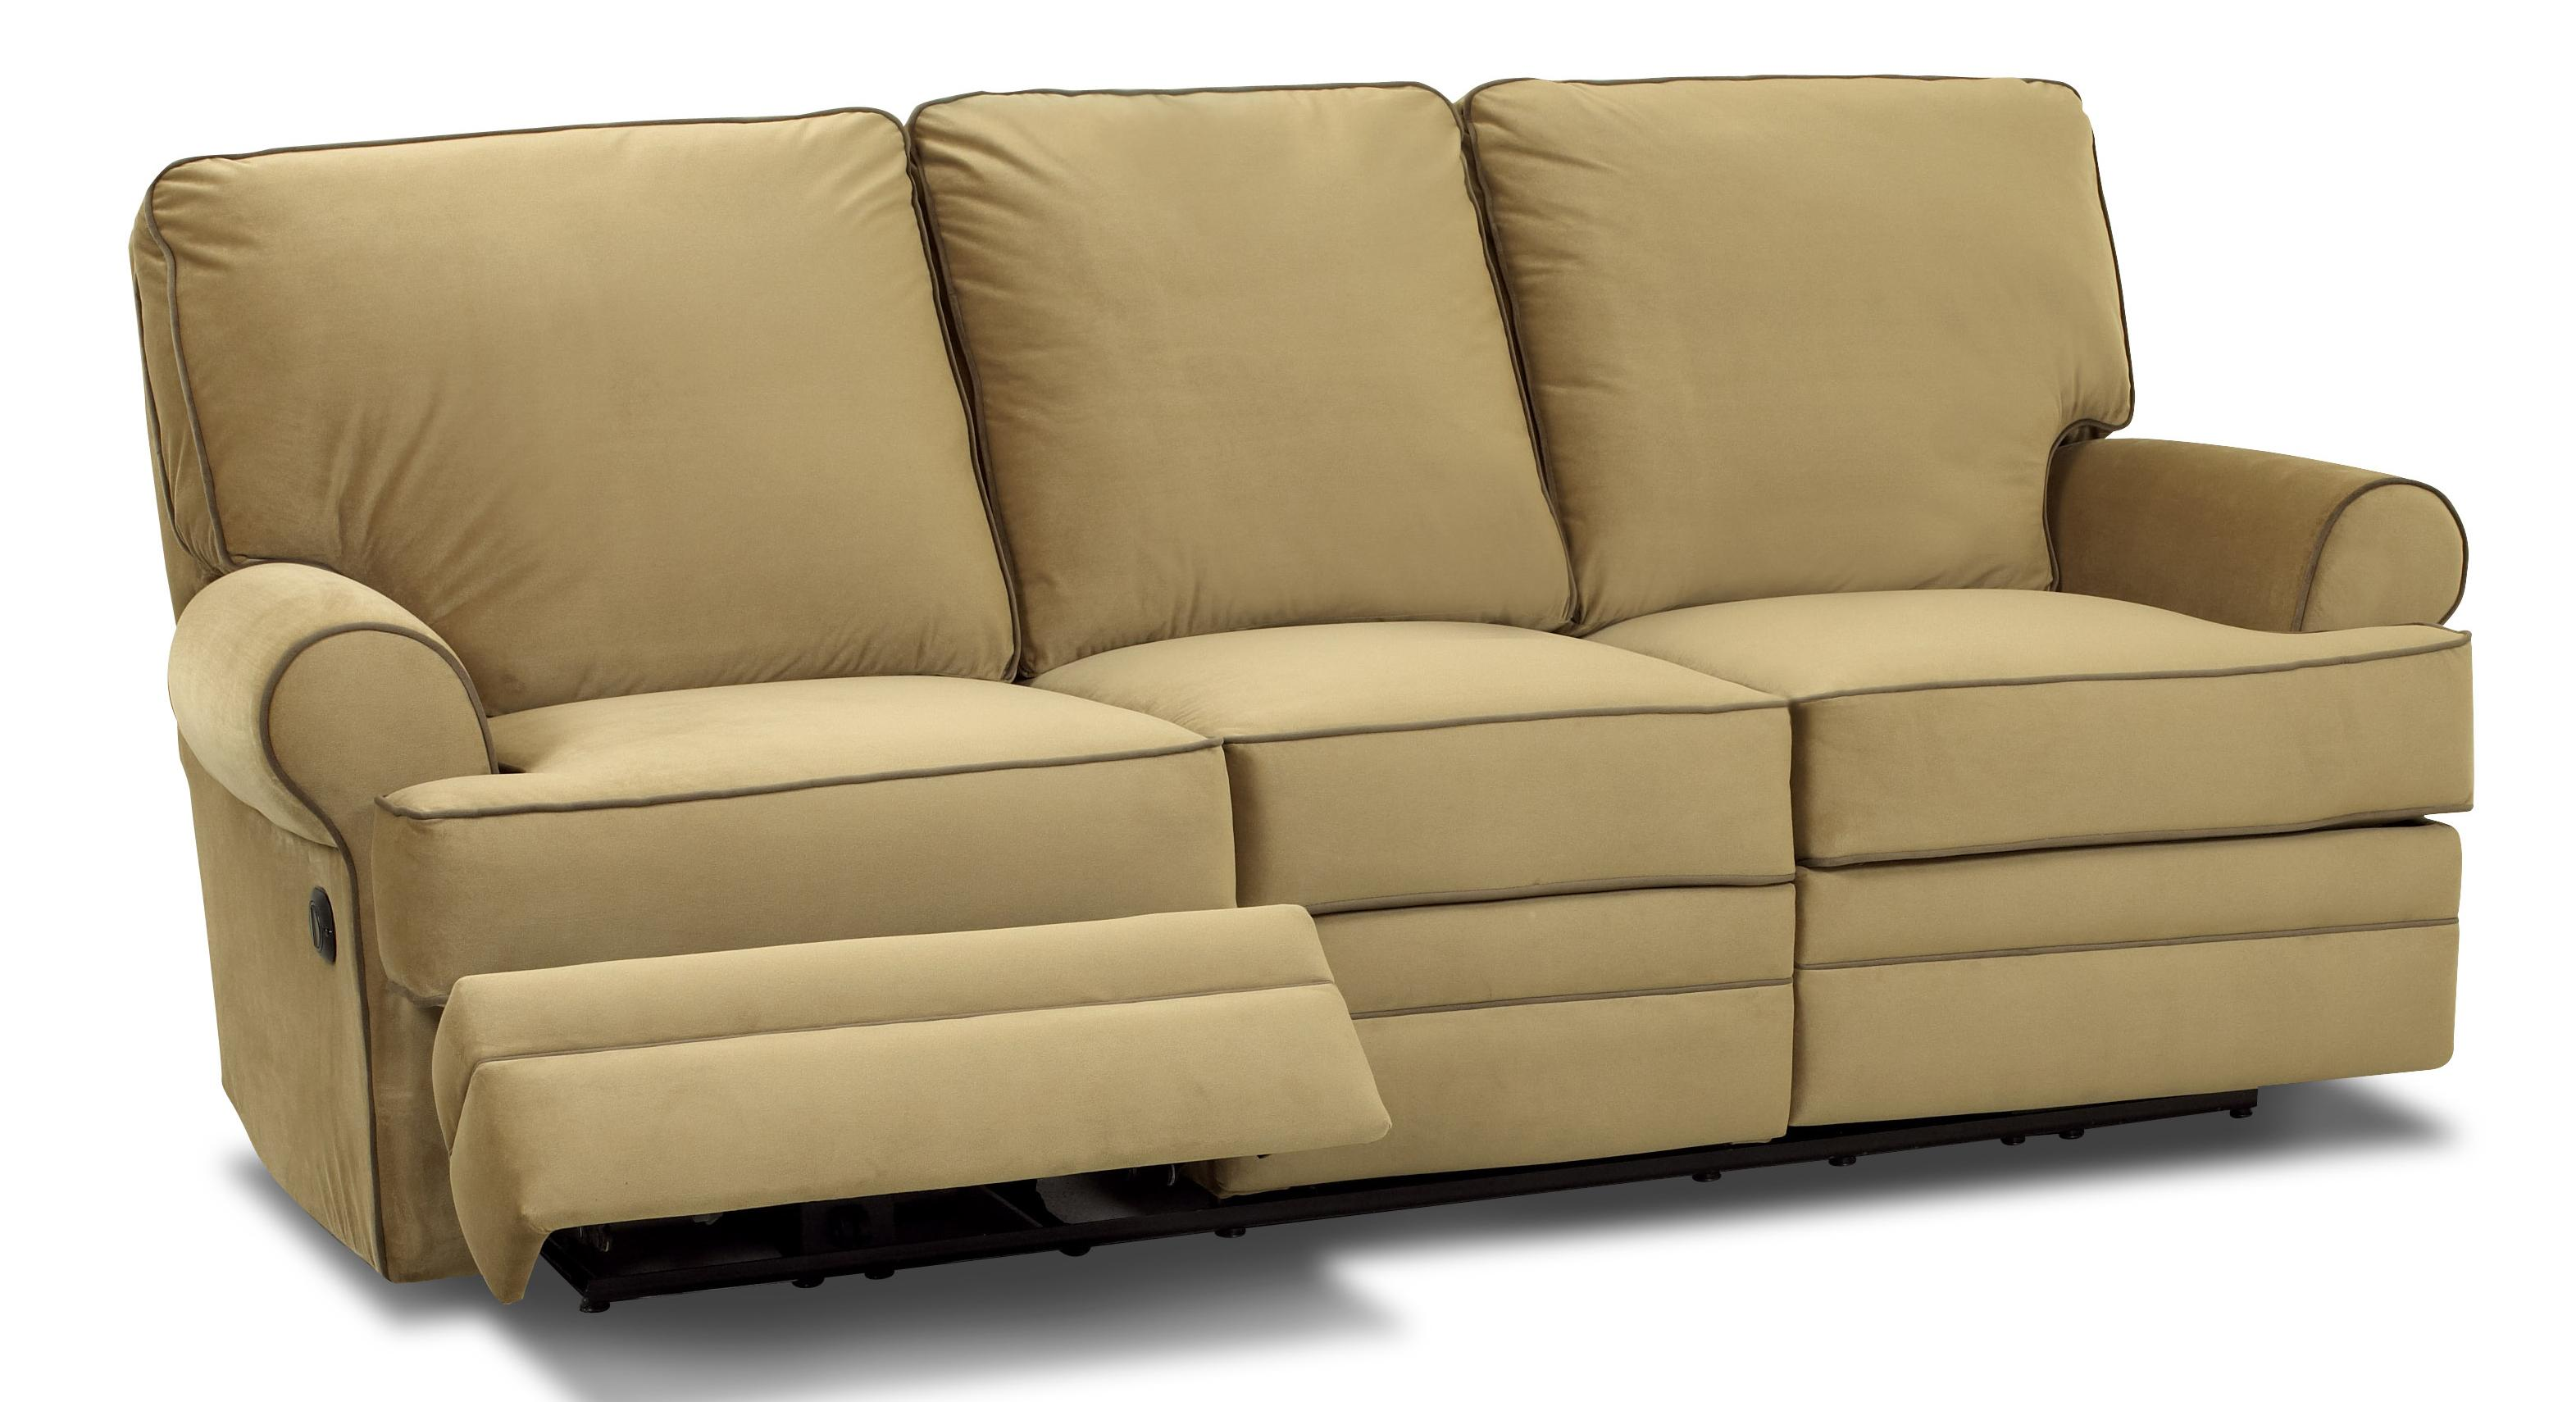 Power Dual-Reclining Sofa  sc 1 st  Wolf Furniture & Power Dual-Reclining Sofa by Klaussner | Wolf and Gardiner Wolf ... islam-shia.org